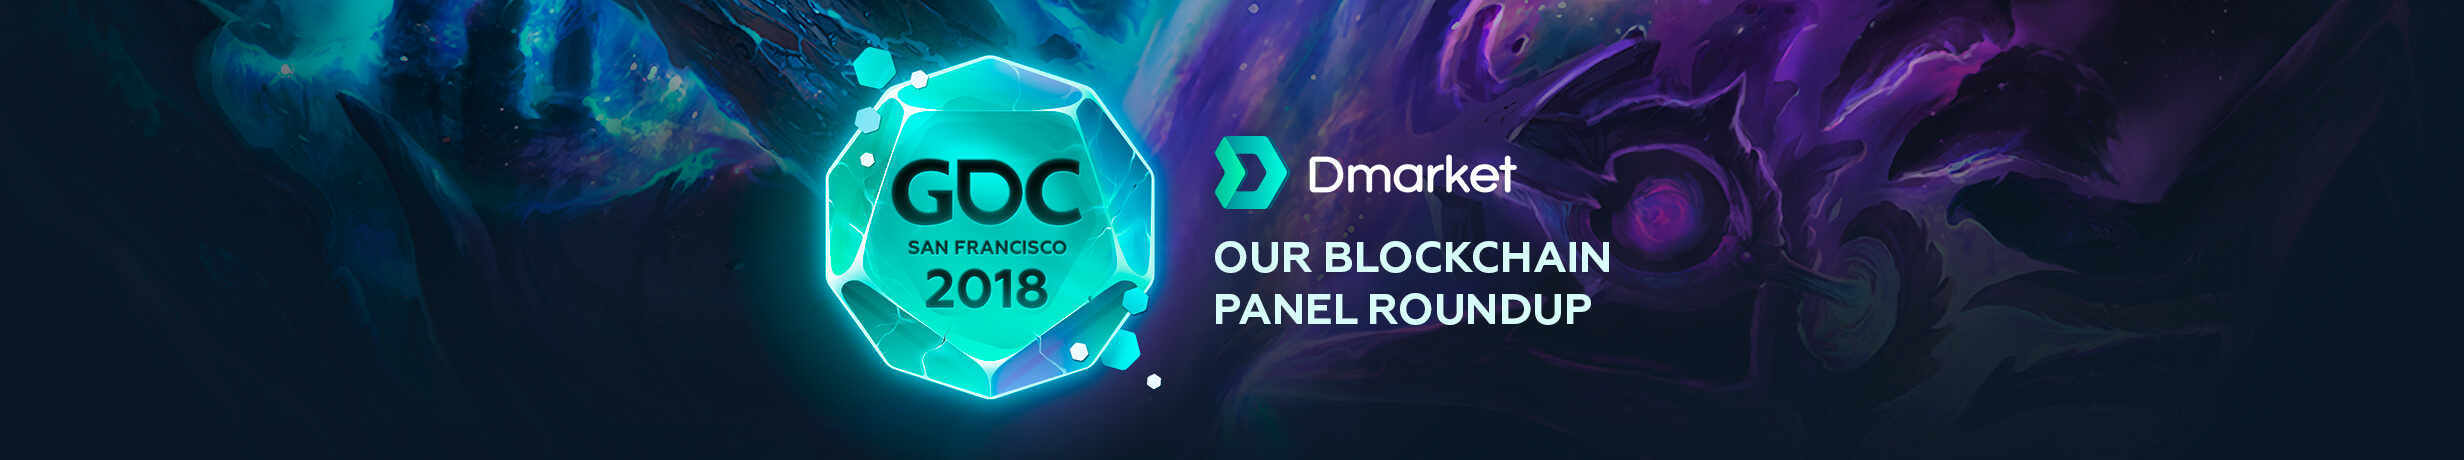 How DMarket Hosted a Blockchain Panel at GDC 2018